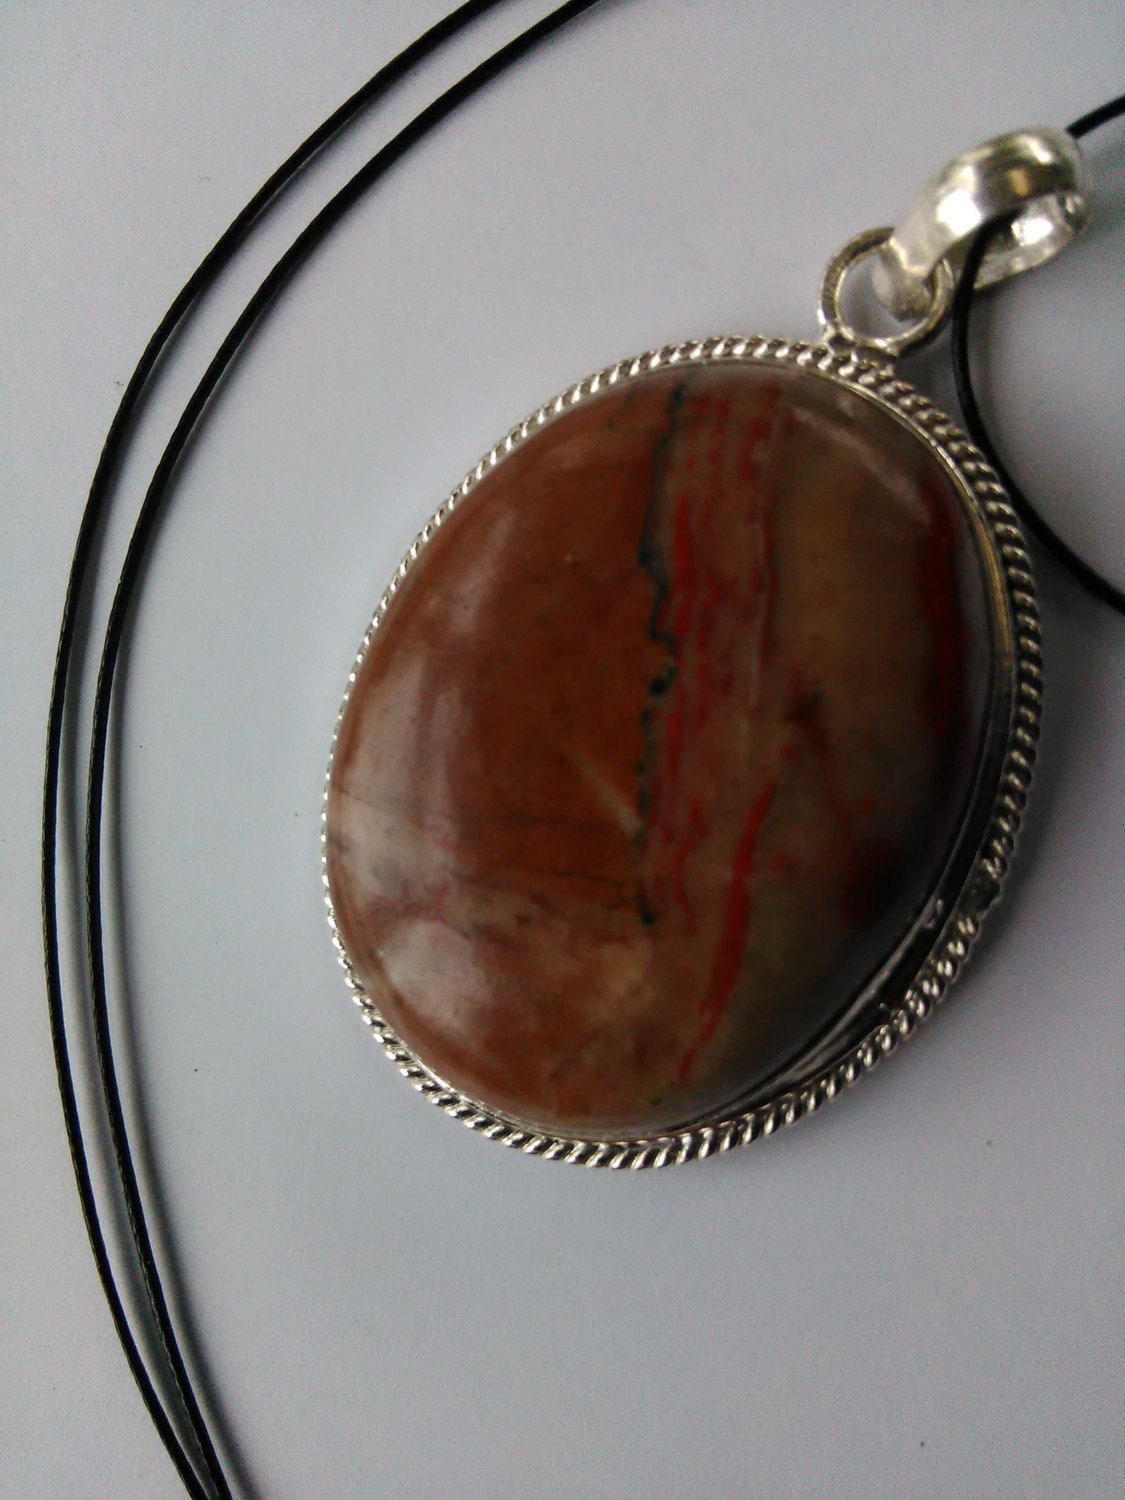 Red jasper pendant natural stone in silver bezel on 925 sterling red jasper pendant natural stone in silver bezel on 925 sterling silver chain gift wrapped for aloadofball Image collections